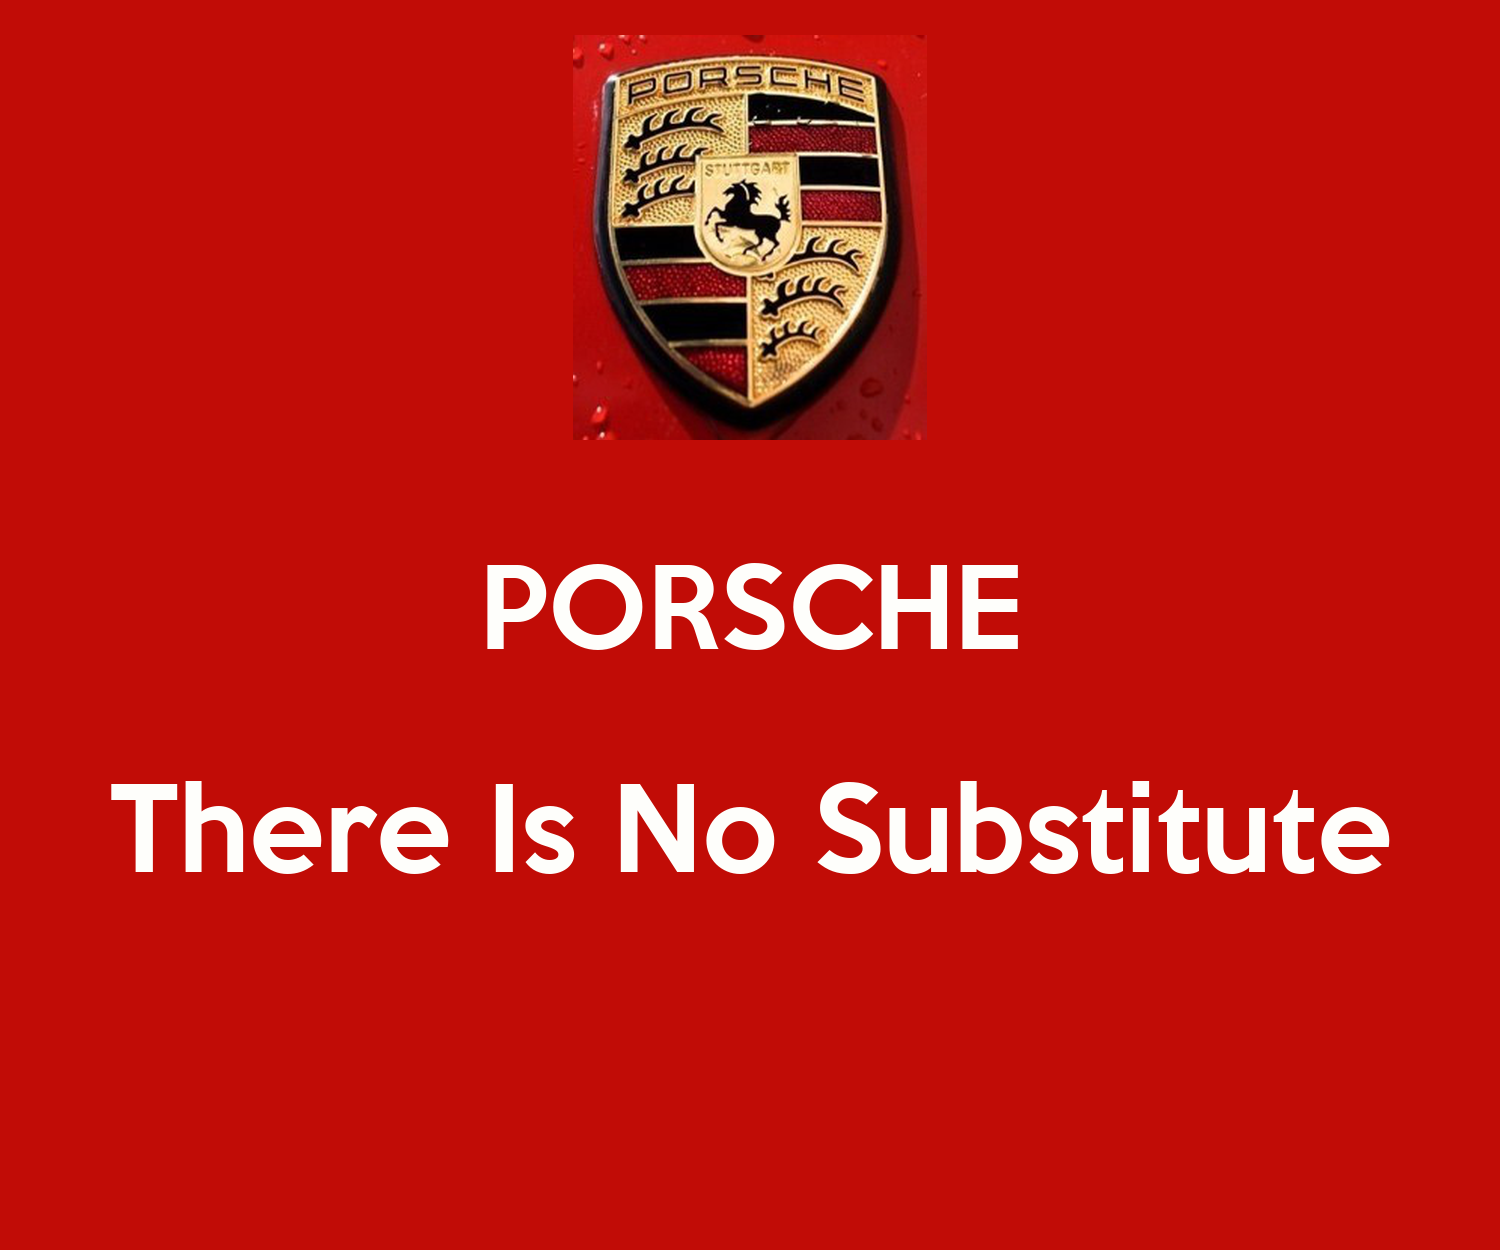 Porsche There Is No Substitute Poster Davers Keep Calm O Matic